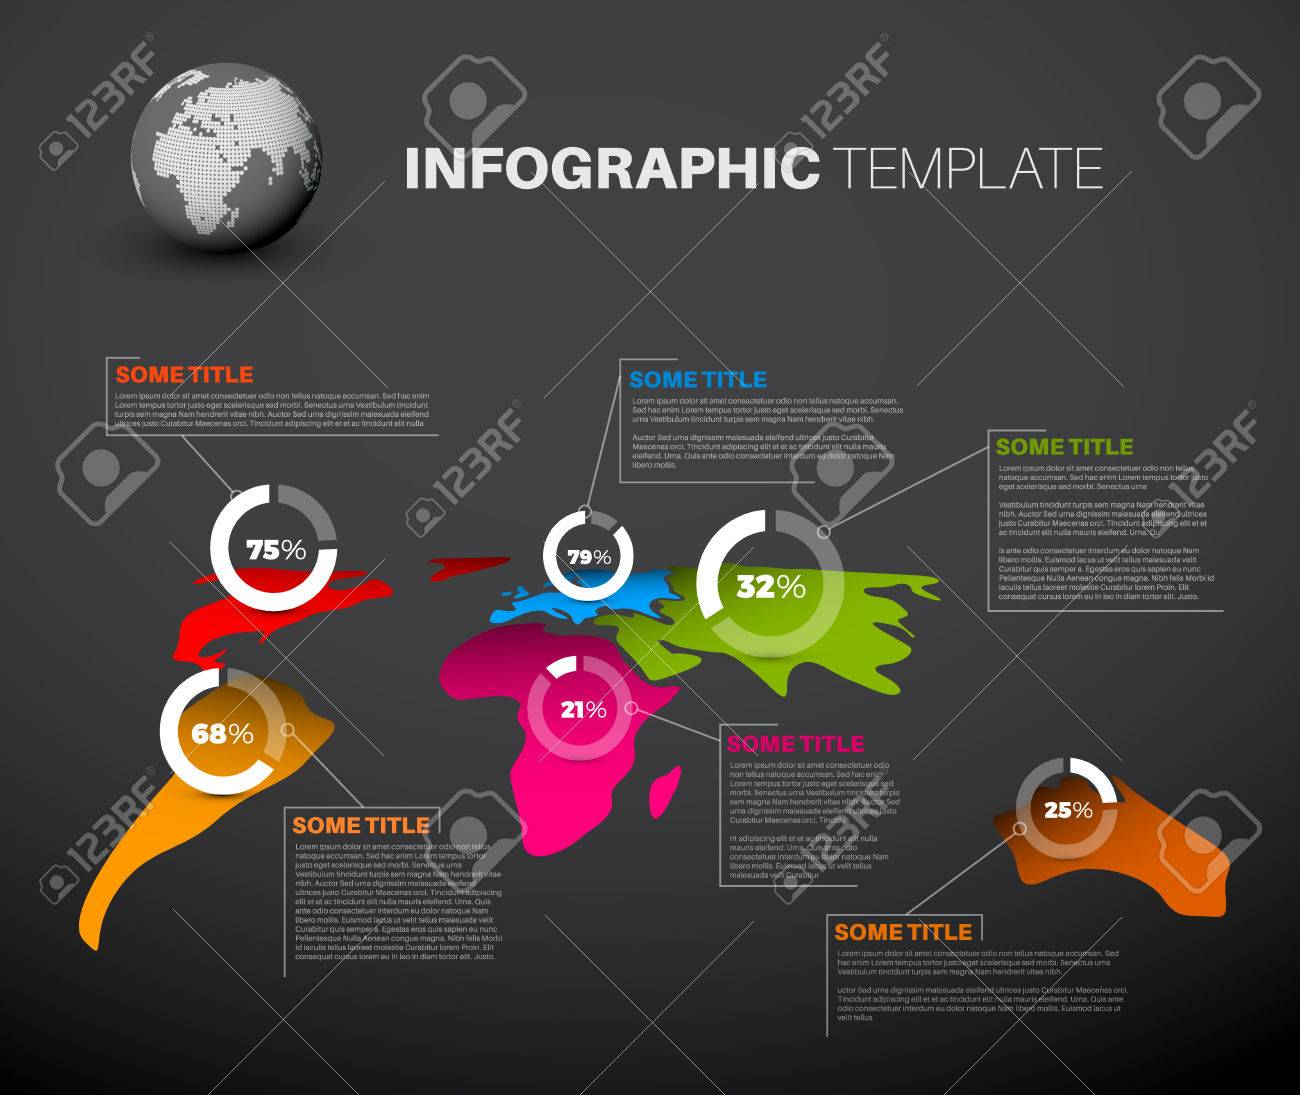 Light world map infographic template with pie charts dark version light world map infographic template with pie charts dark version stock vector 48961694 gumiabroncs Images